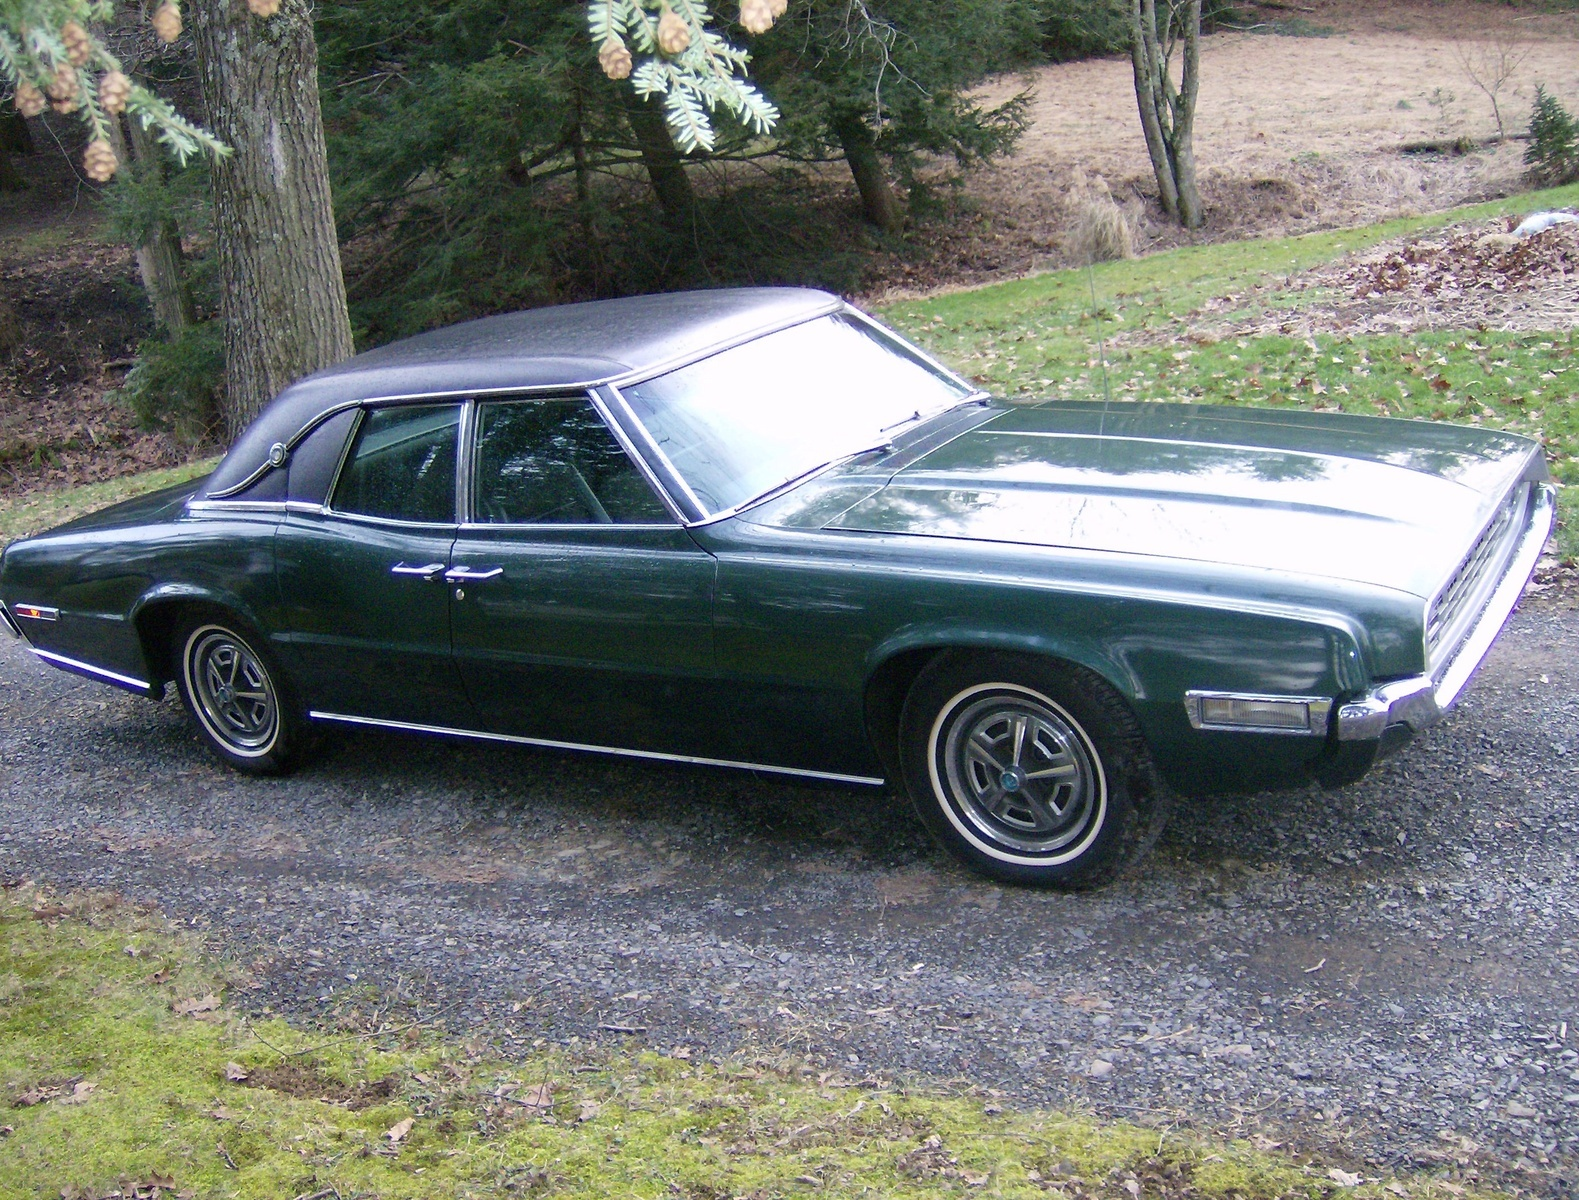 Shopping & Pricing Questions - I have a 68 Ford Thunderbird I would ...